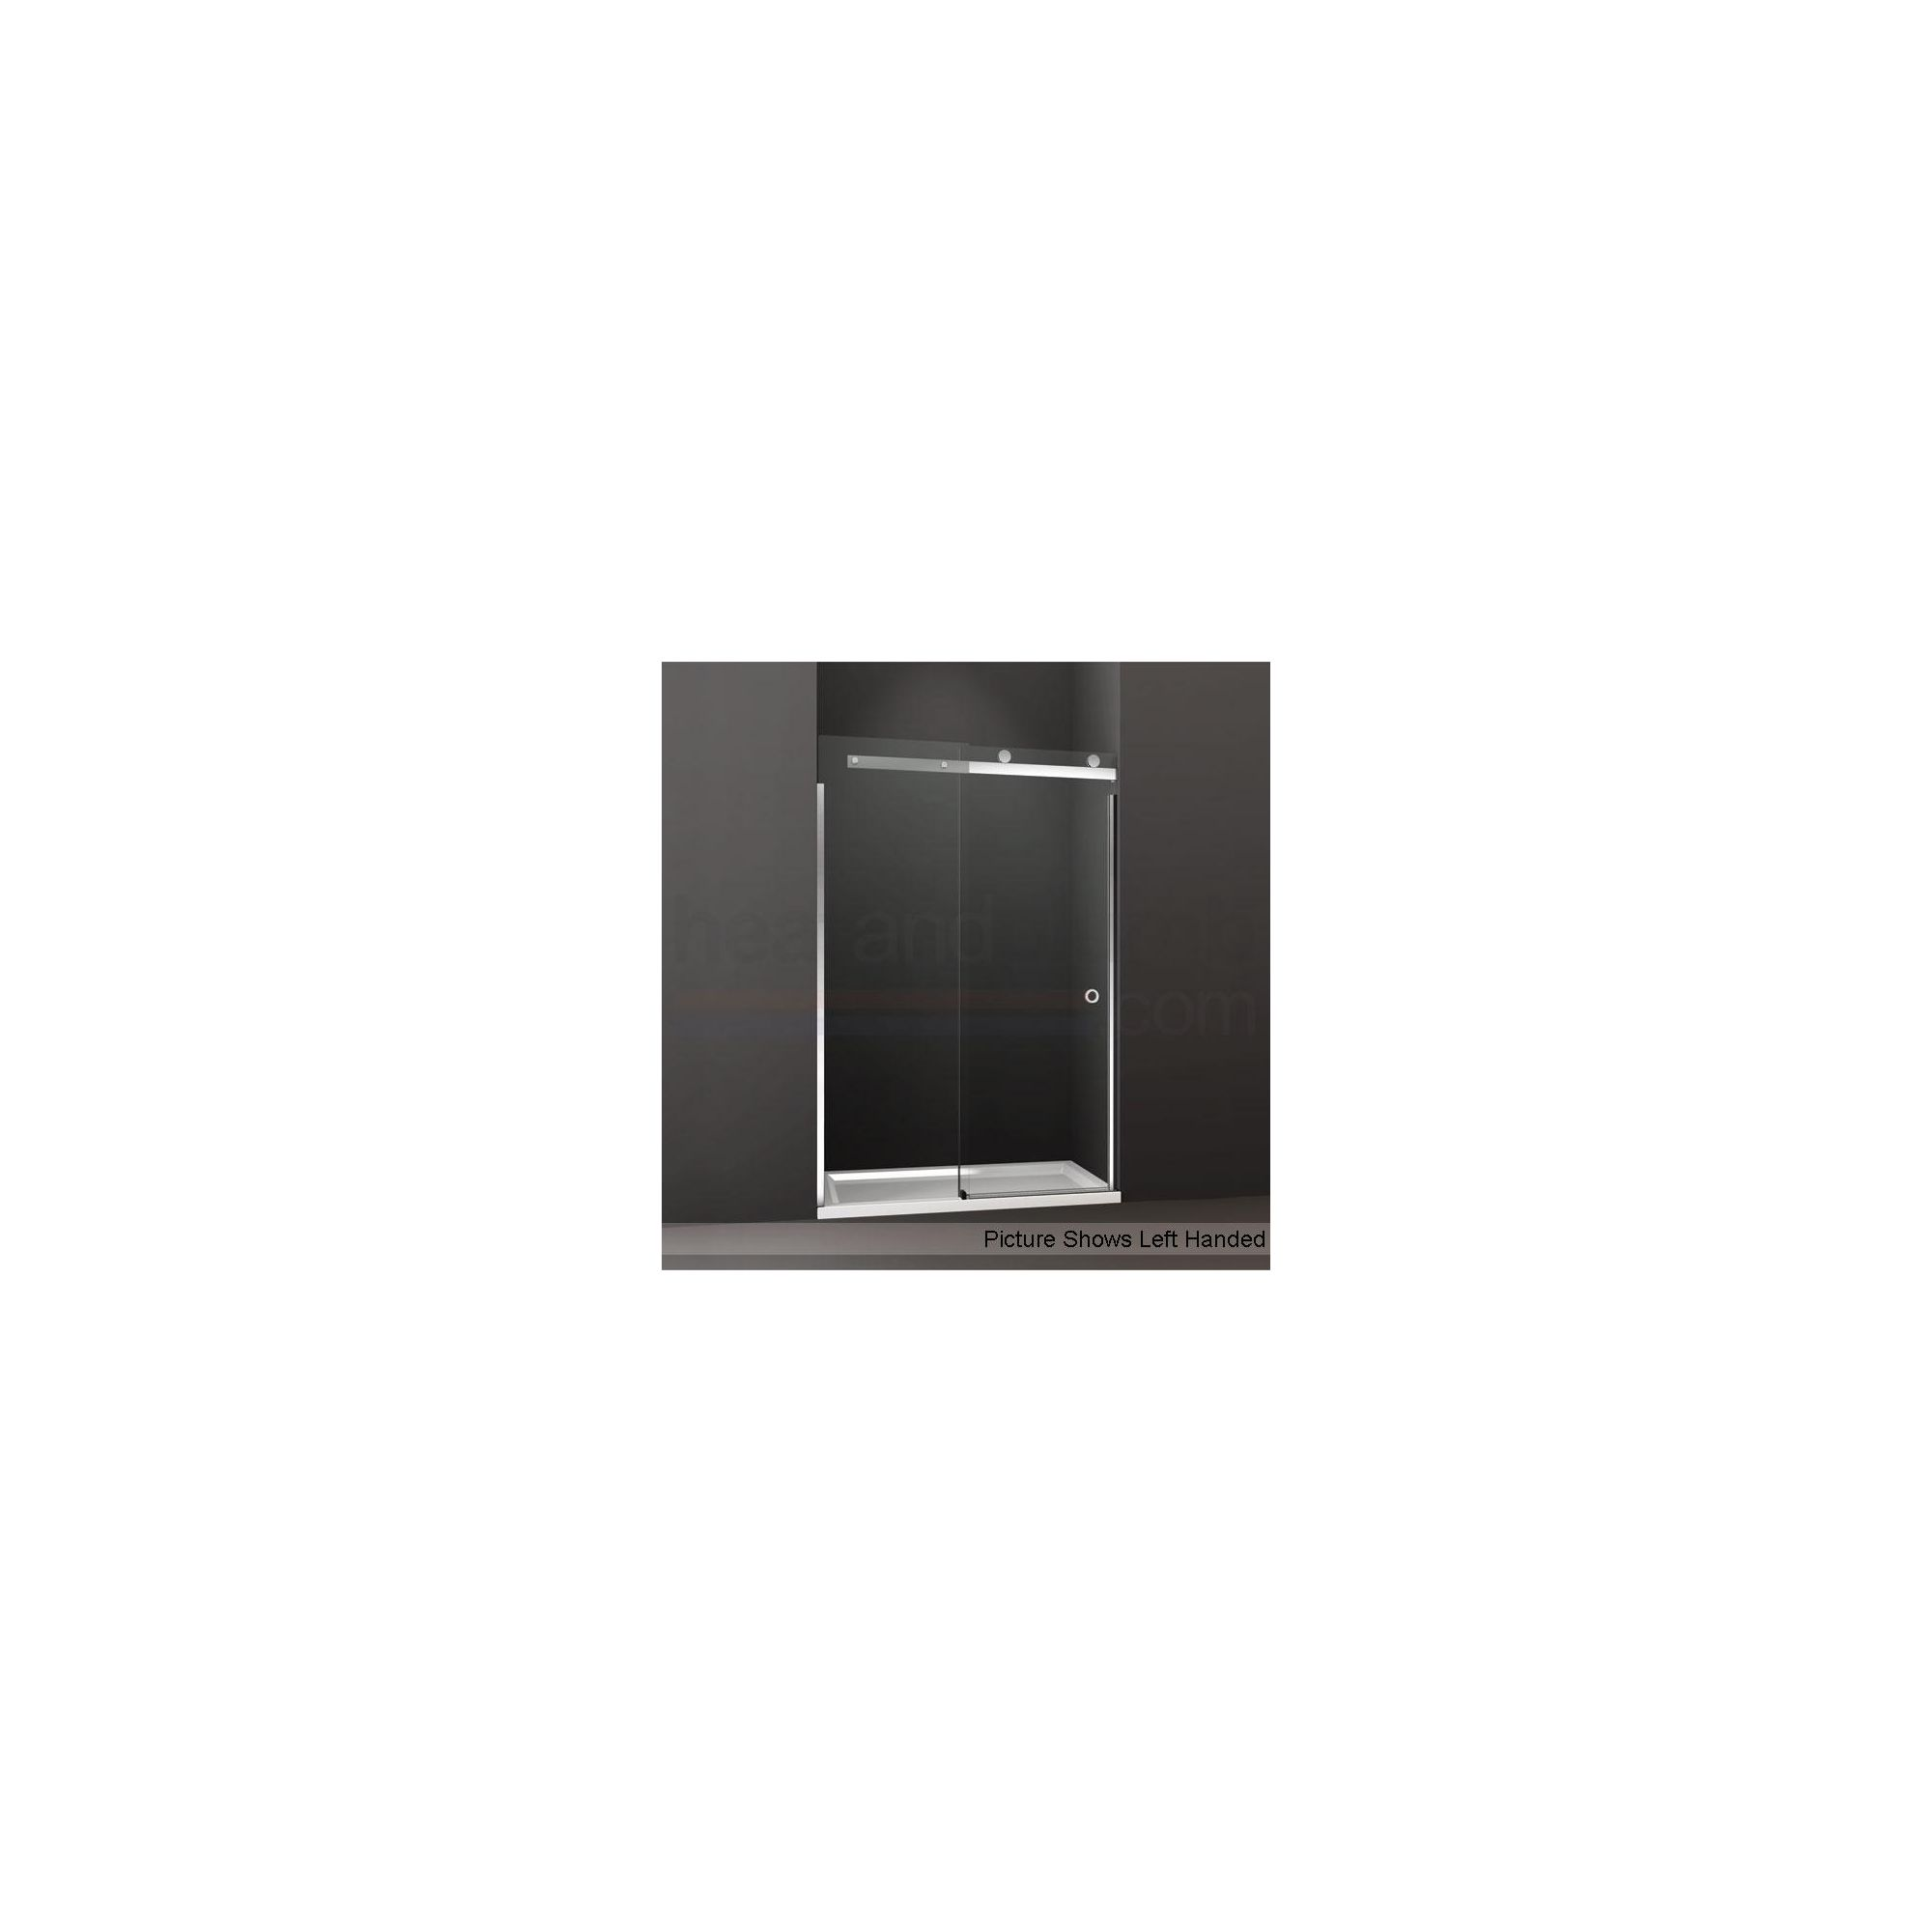 Merlyn Series 10 Sliding Door ALCOVE Shower Enclosure, 1100mm x 800mm, Low Profile Tray, 10mm Glass at Tesco Direct